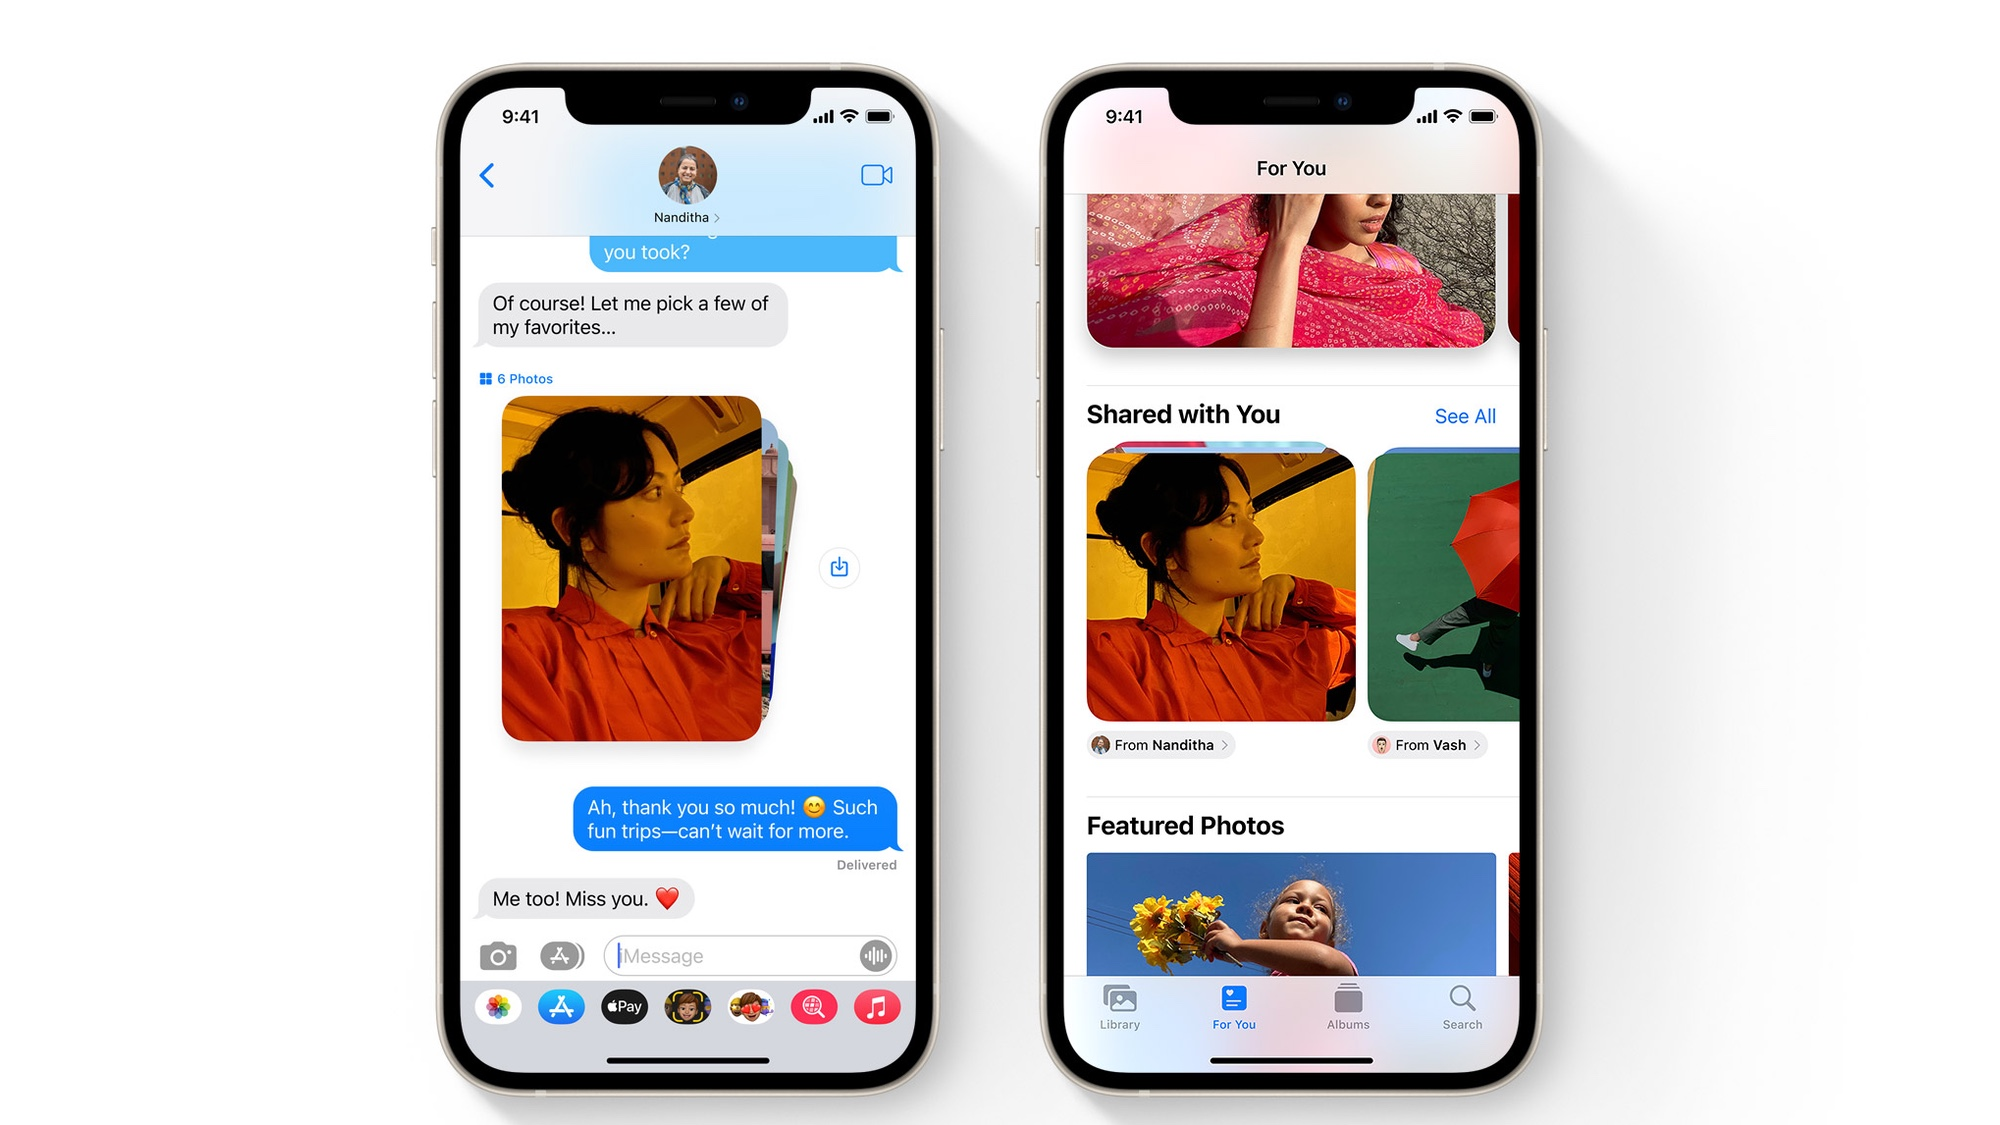 iOS 15 features messages